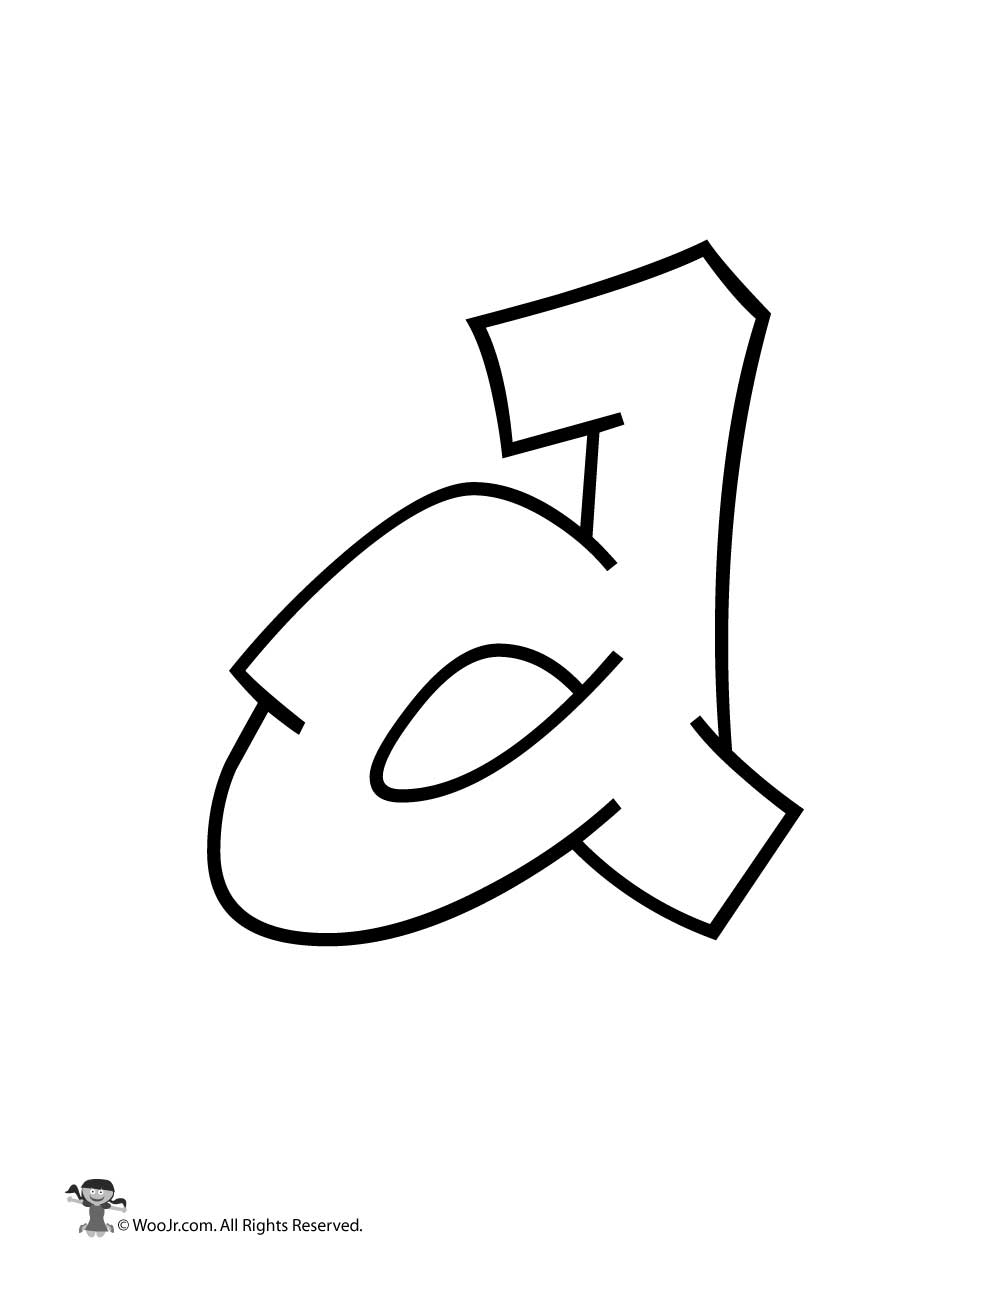 Letter D Lowercase | www.pixshark.com - Images Galleries ...